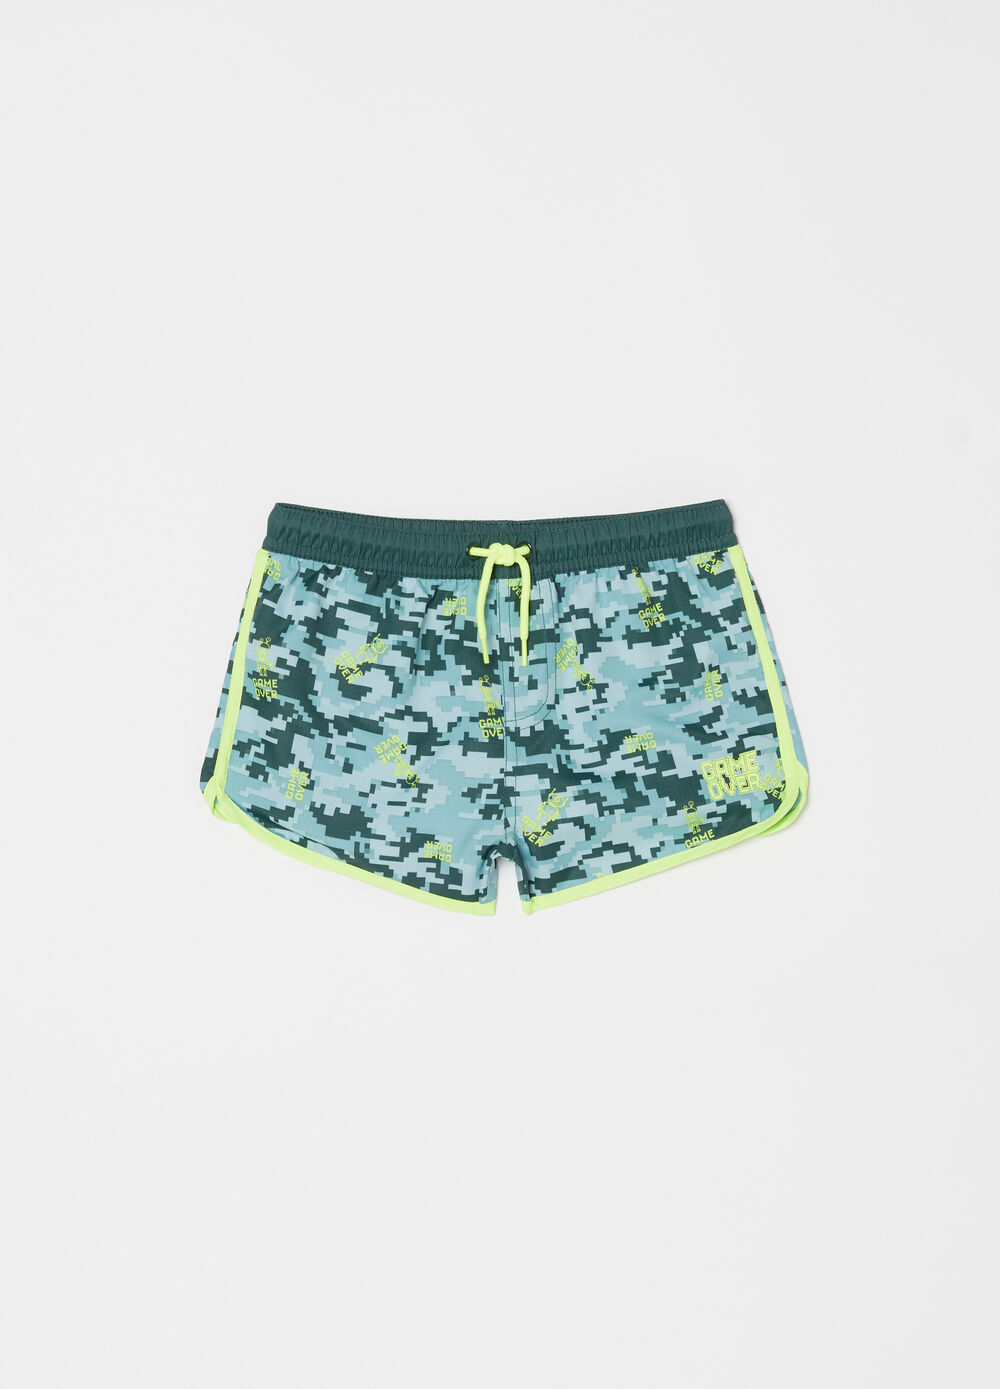 Beach shorts with drawstring and camouflage pattern